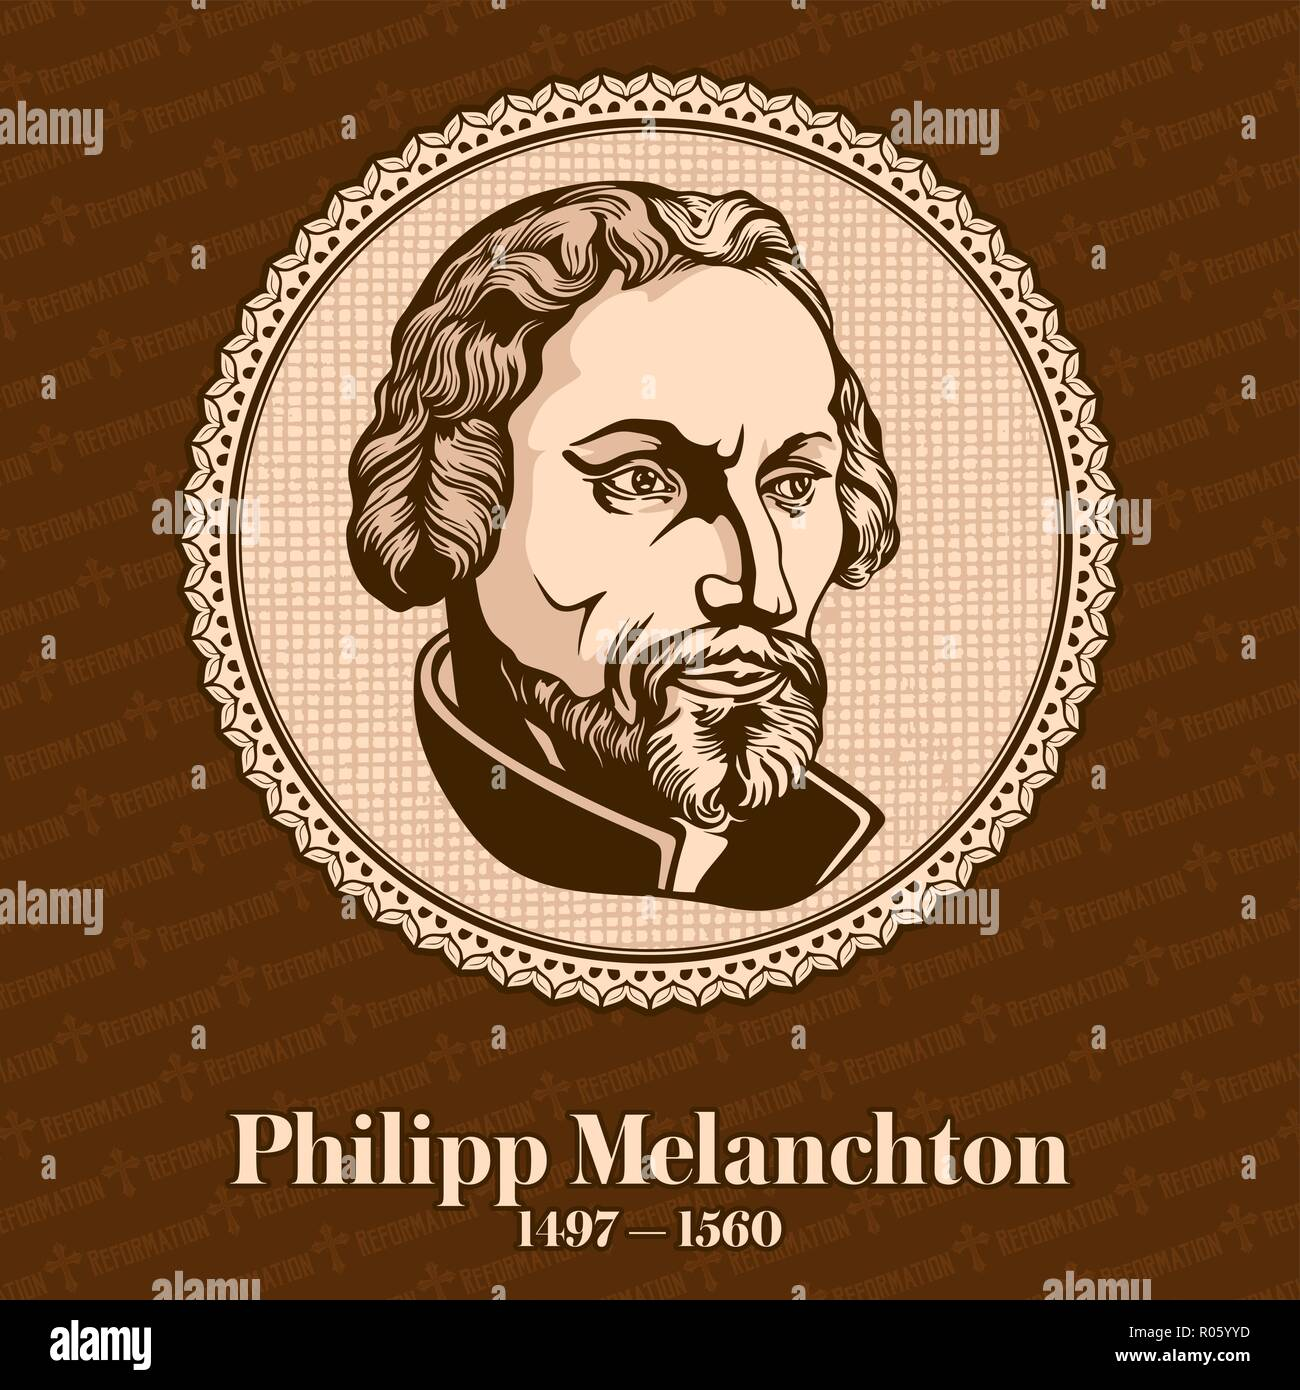 Philip Melanchthon (1497 – 1560) was a German Lutheran reformer, collaborator with Martin Luther, the first systematic theologian - Stock Image